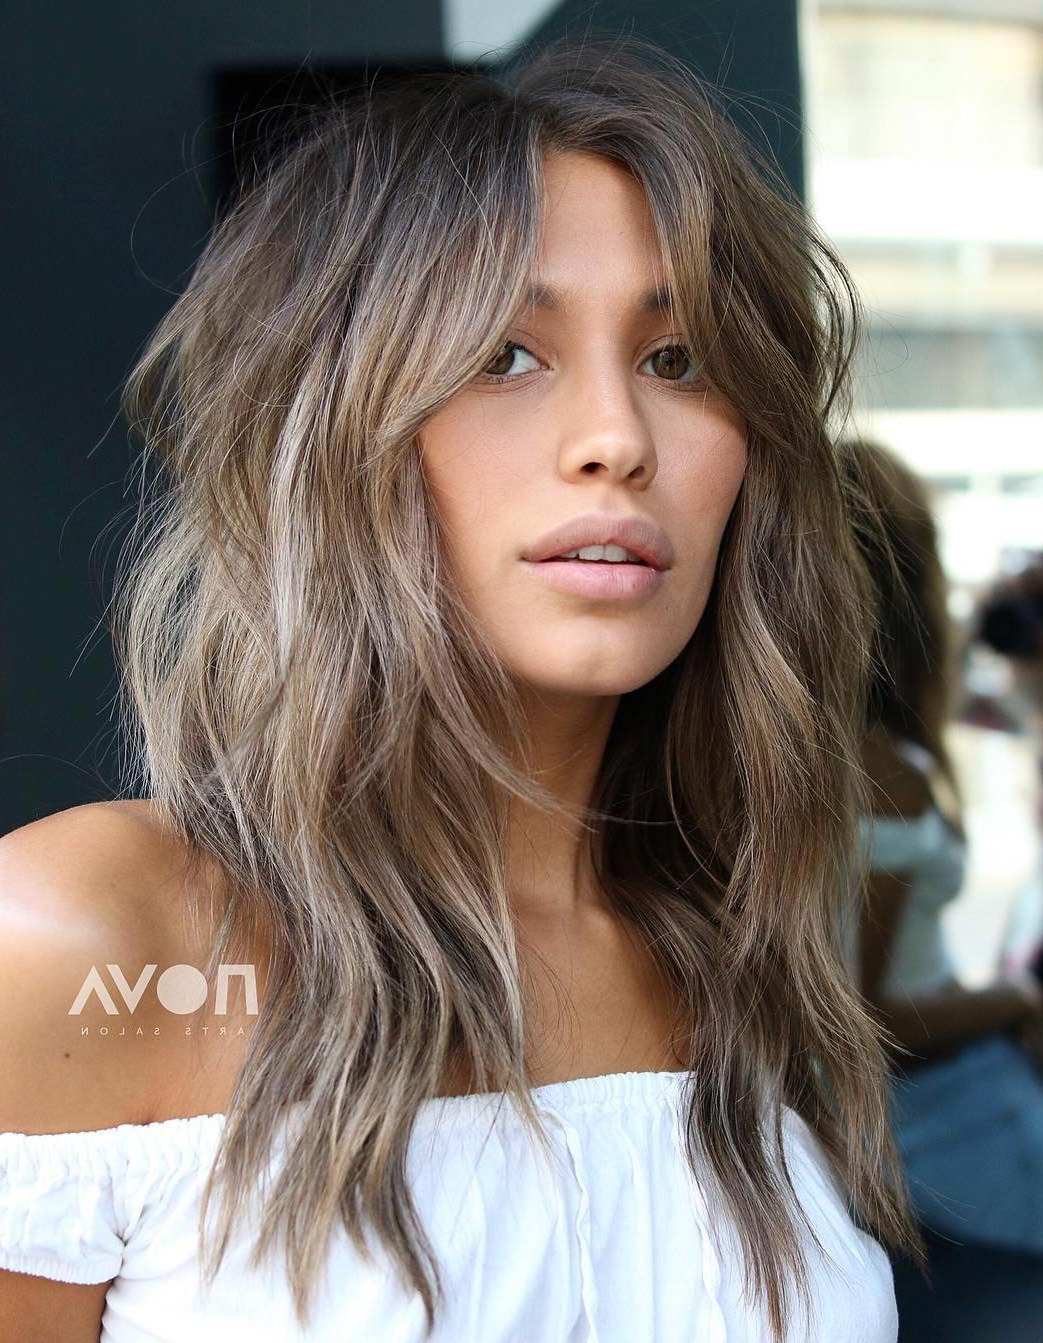 40 Modern Shag Haircuts For Women To Make A Splash For Well Known Gray Razored Shag Haircuts With Black Roots (View 9 of 20)